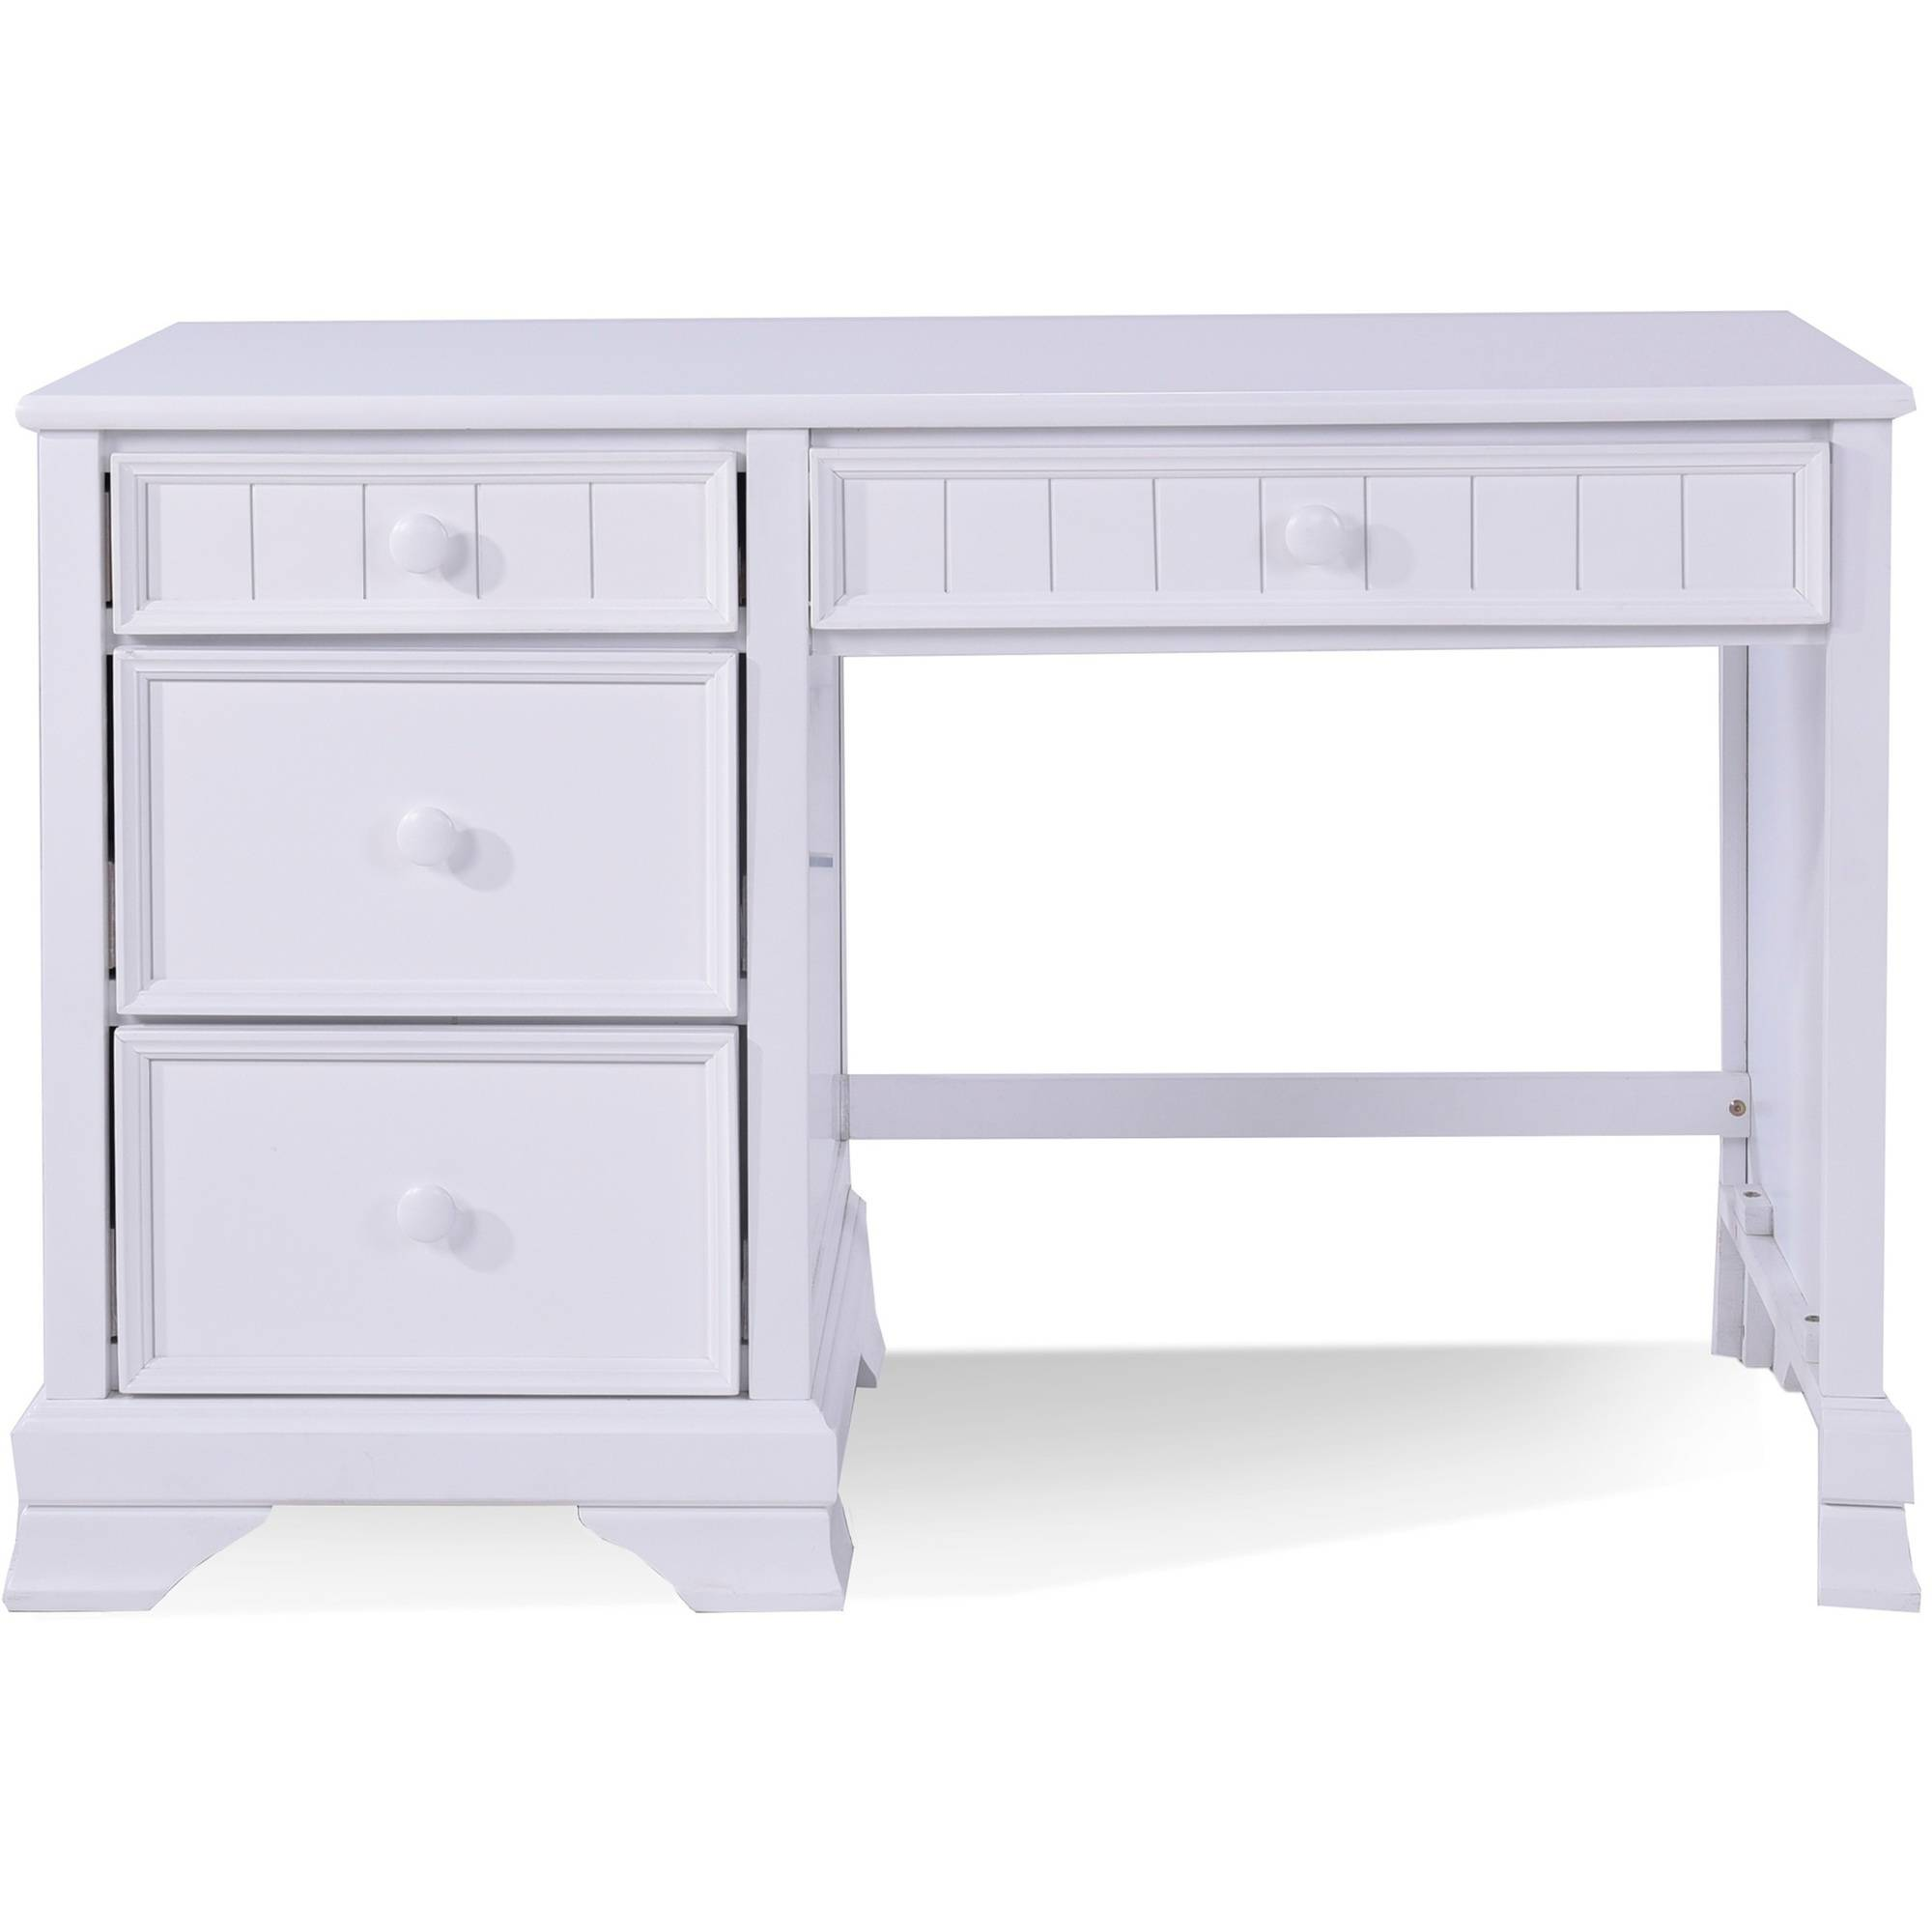 Better Homes And Gardens Kids Sebring Desk, White   Walmart.com